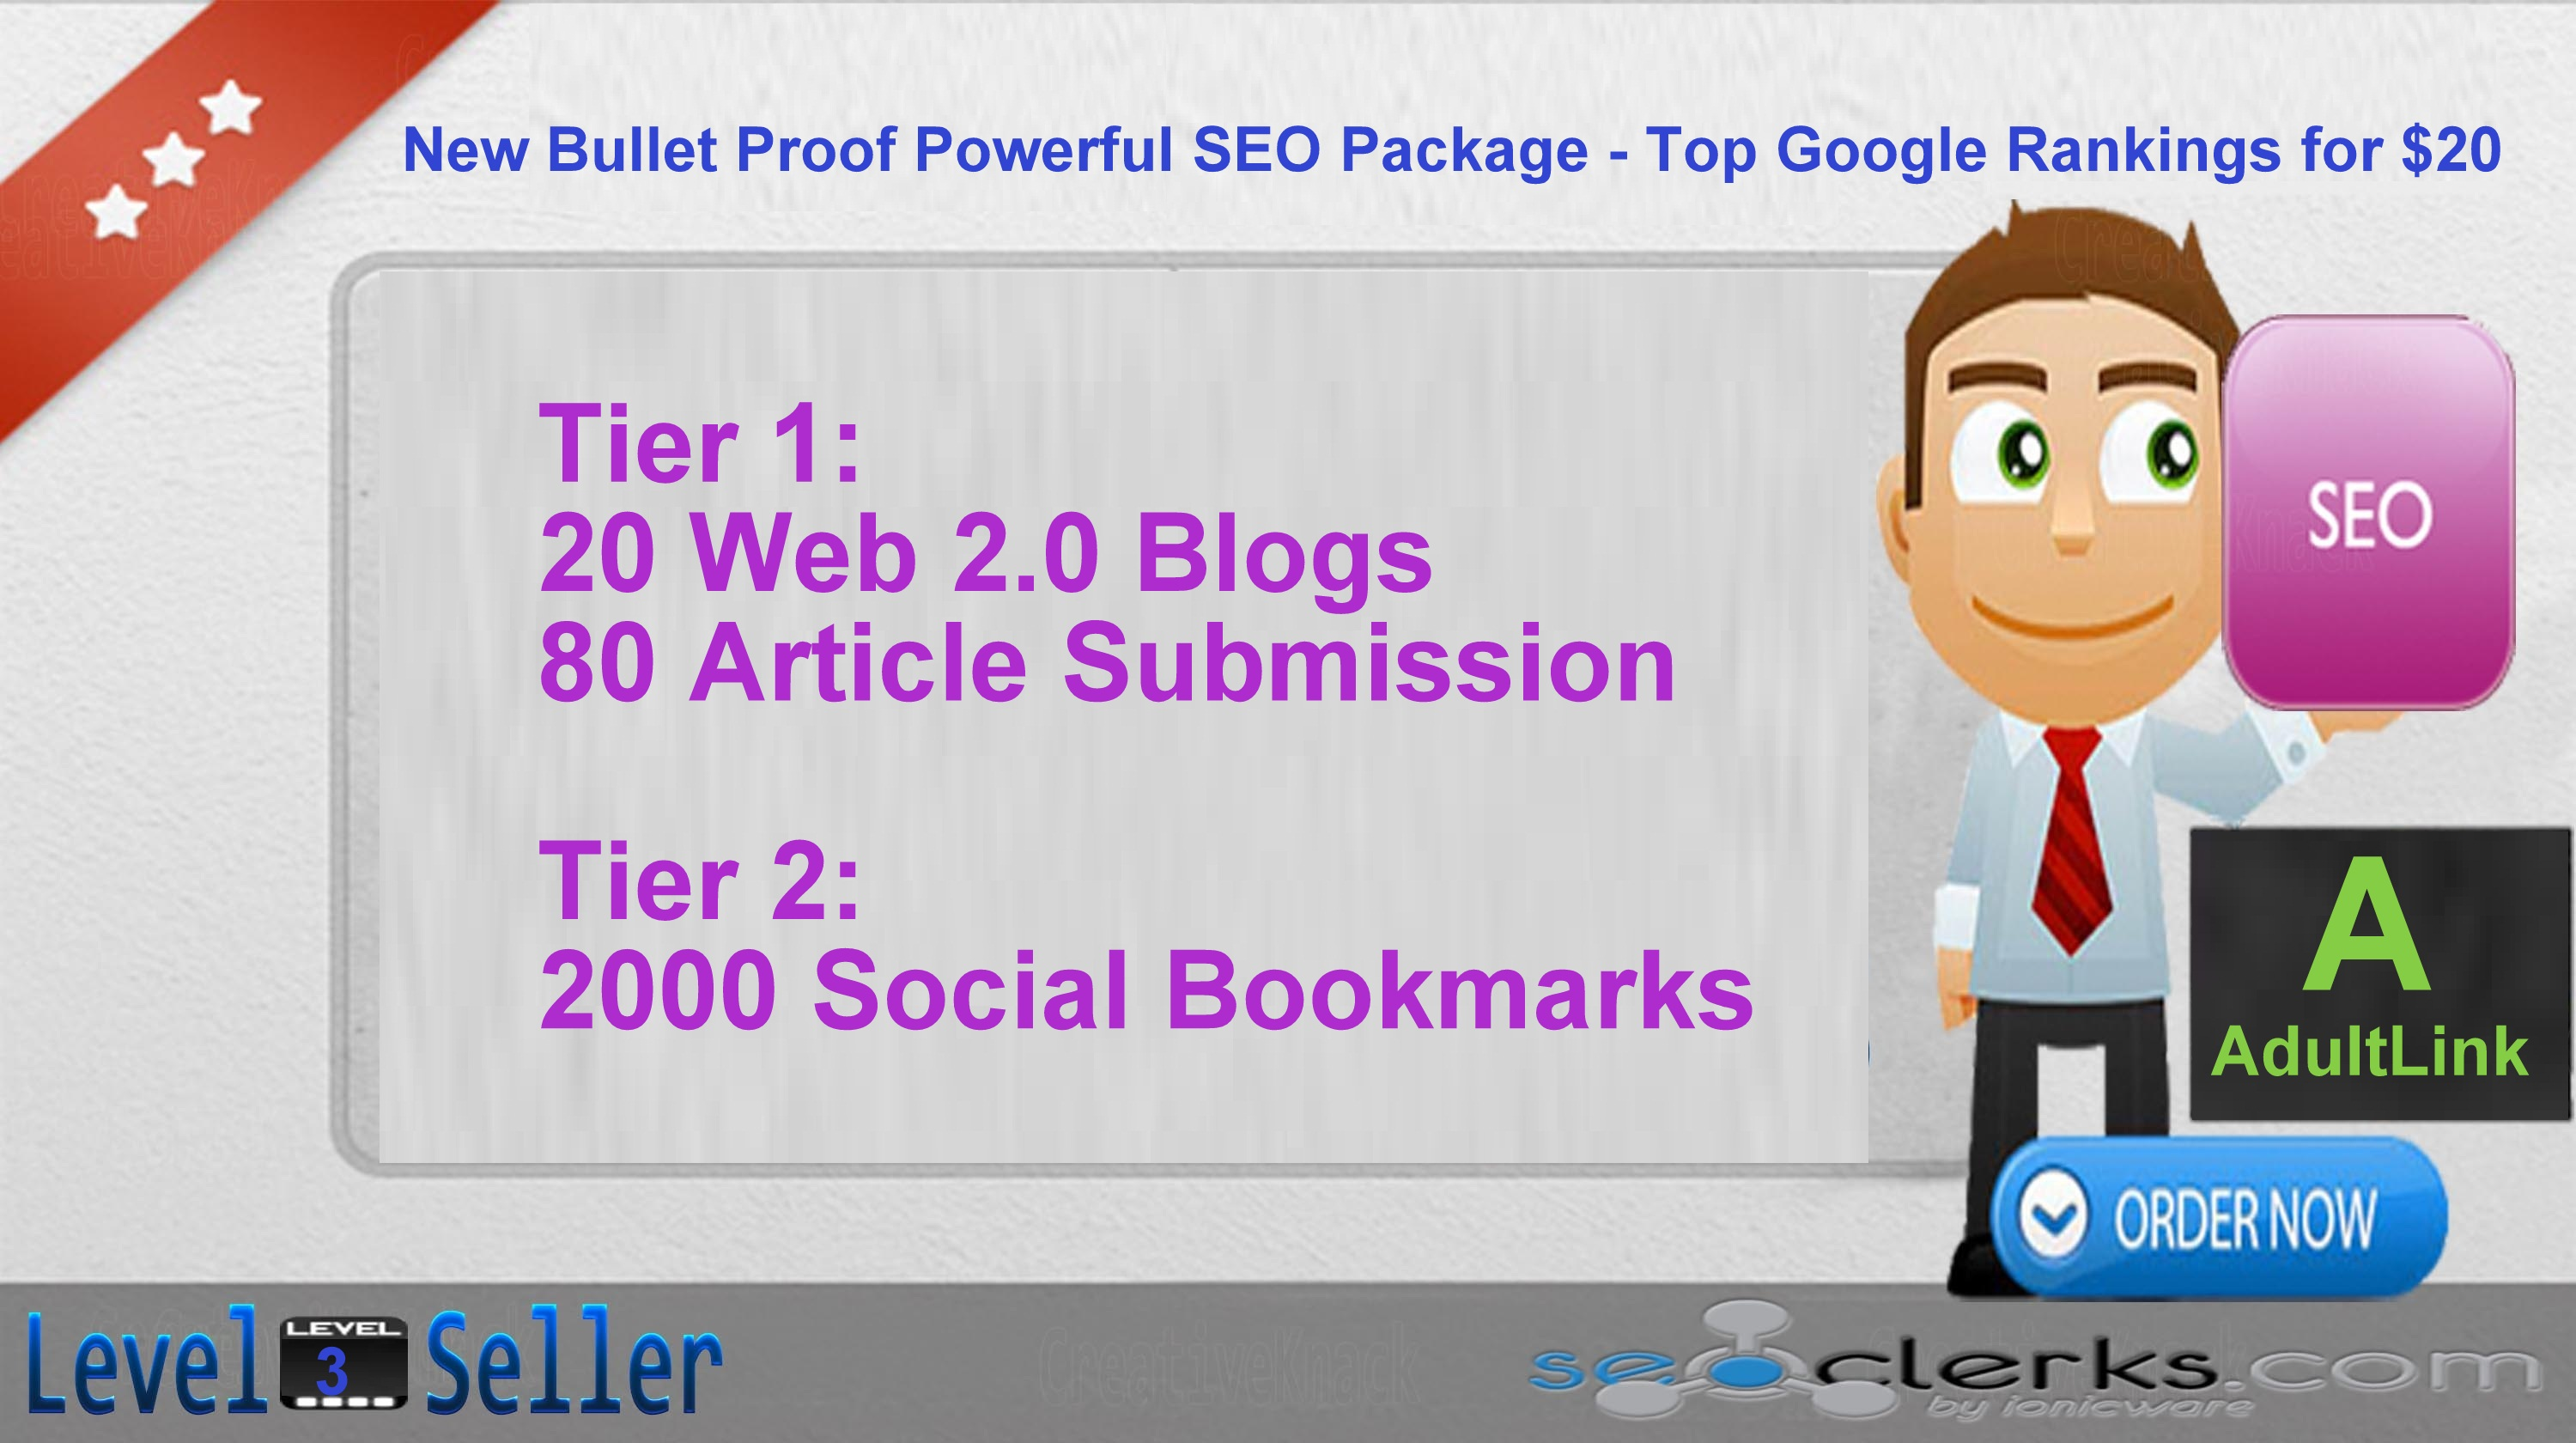 New Bullet Proof Powerful SEO Package - Top Google Ra...